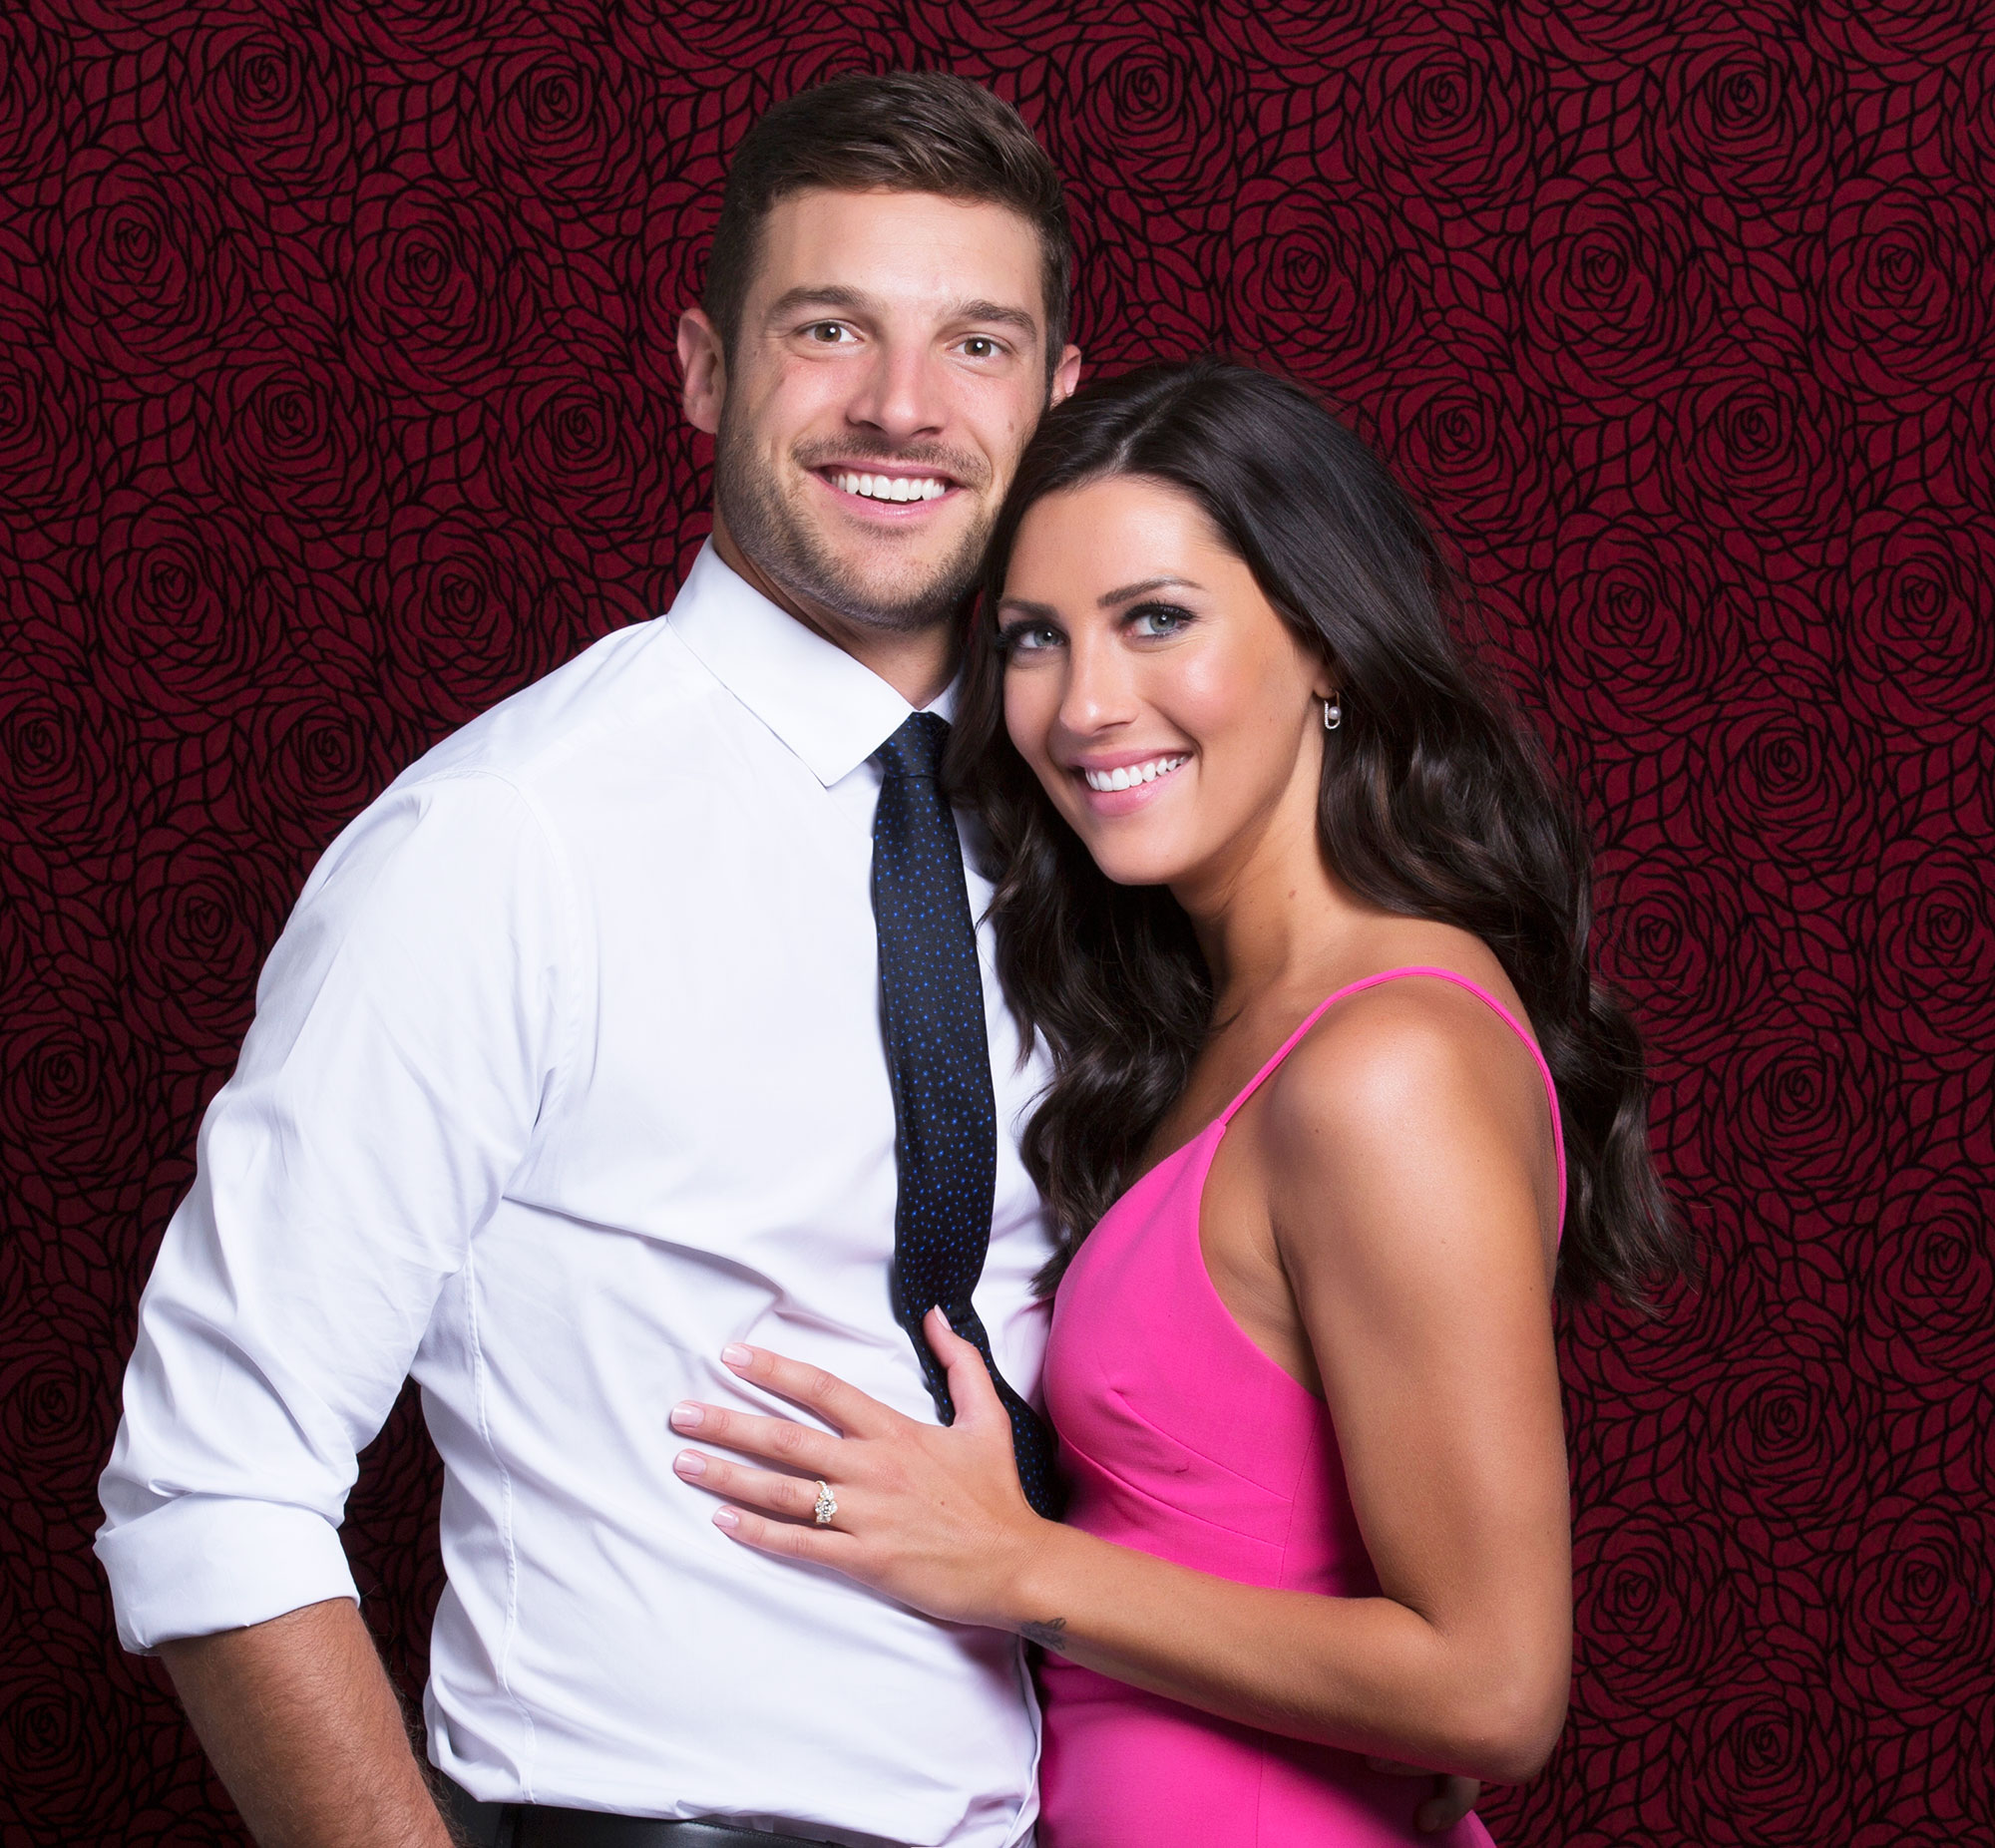 Becca-Kufrin-Garrett-Yrigoyen - THE BACHELORETTE – It's official! During the season finale of the The Bachelorette Becca Kufrin made Garrett Yrigoyen a happy man by choosing him and he got down on one knee and proposed.